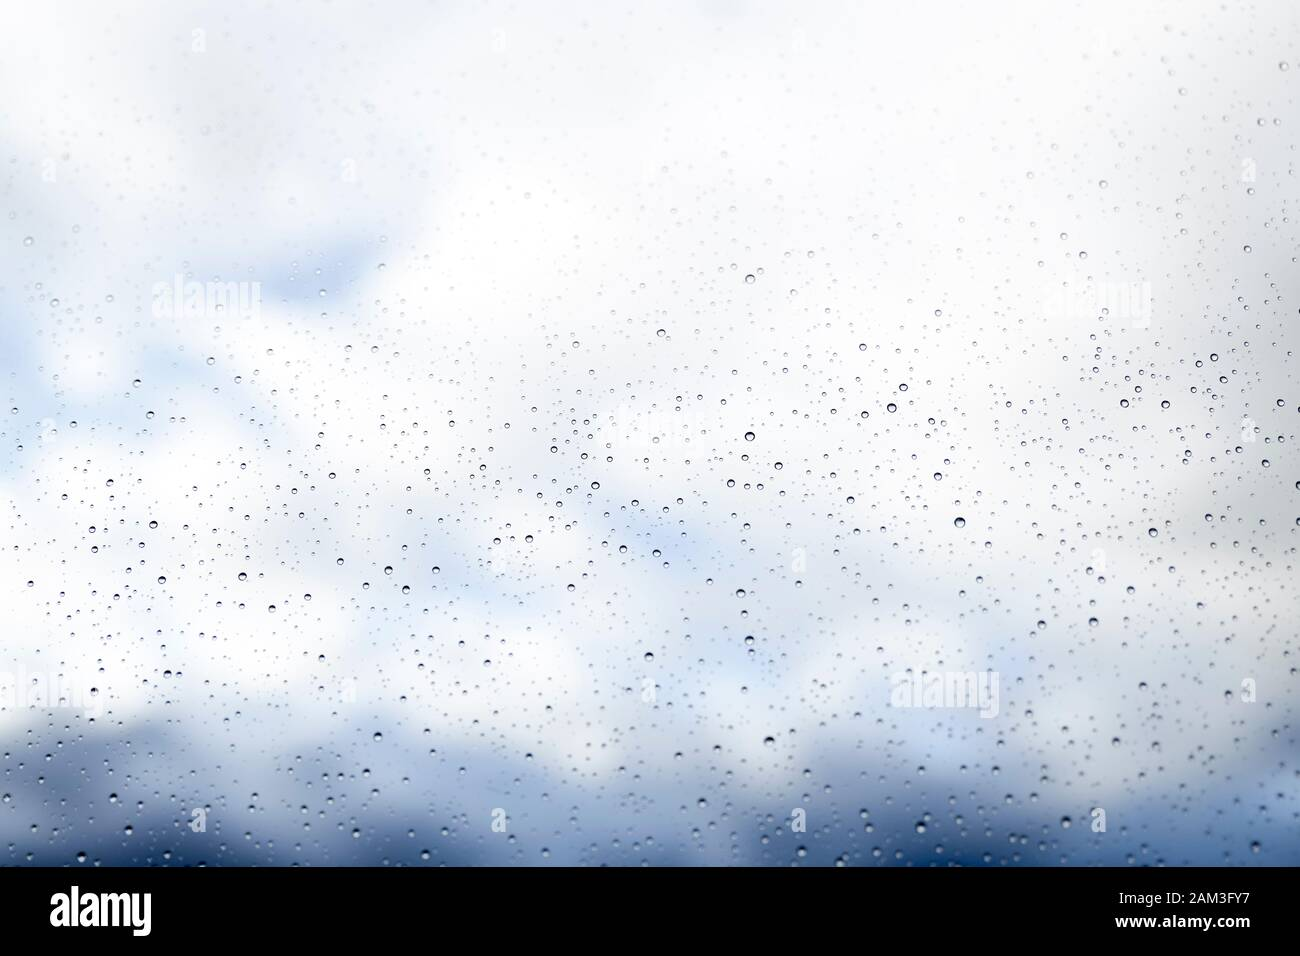 Glass texture with water drops on a rainy spring day. concept abstract background Stock Photo